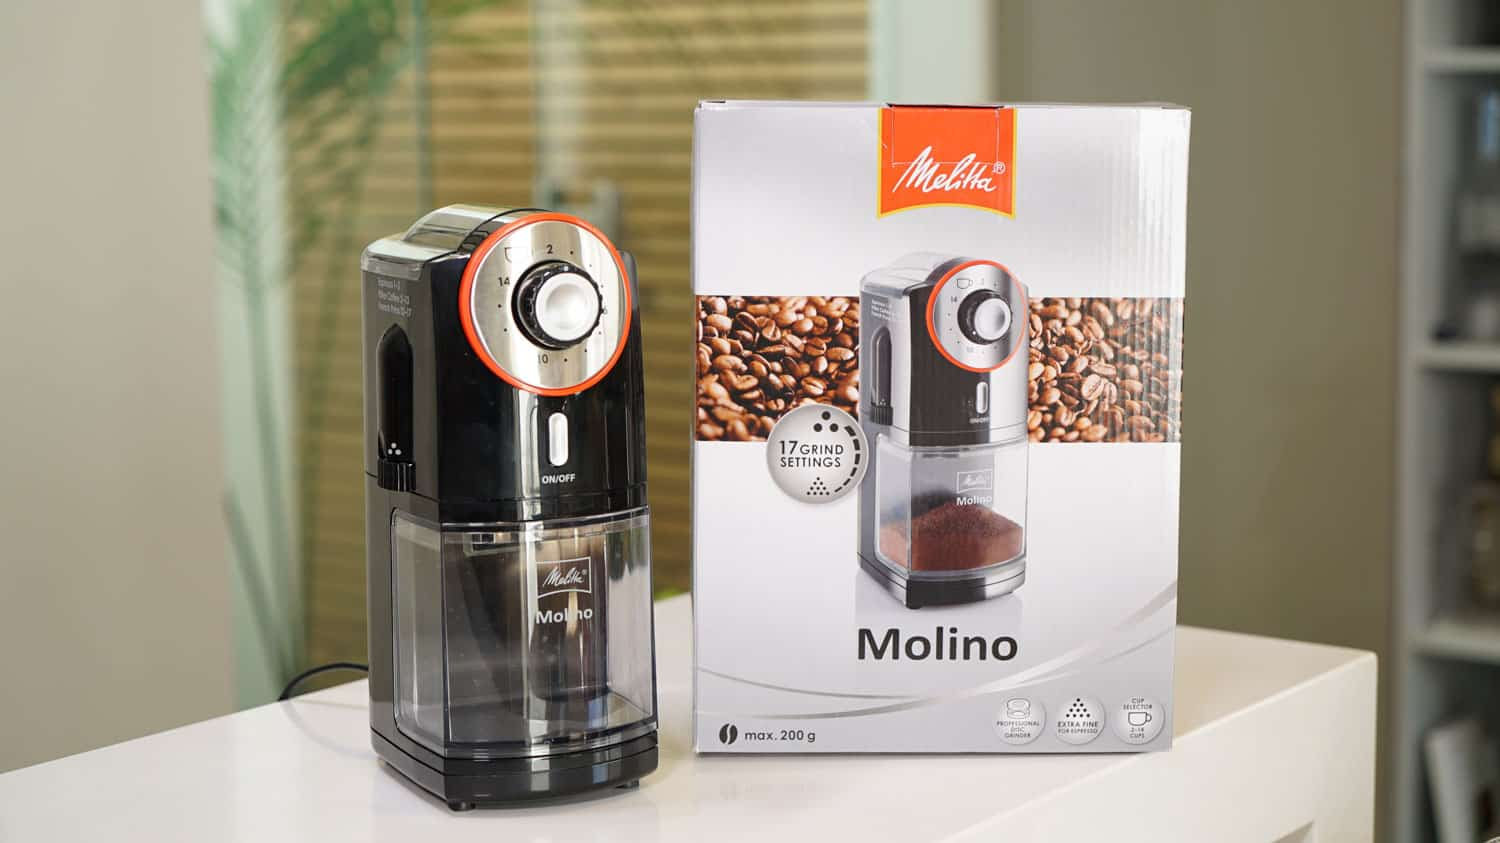 Melitta Molino Review